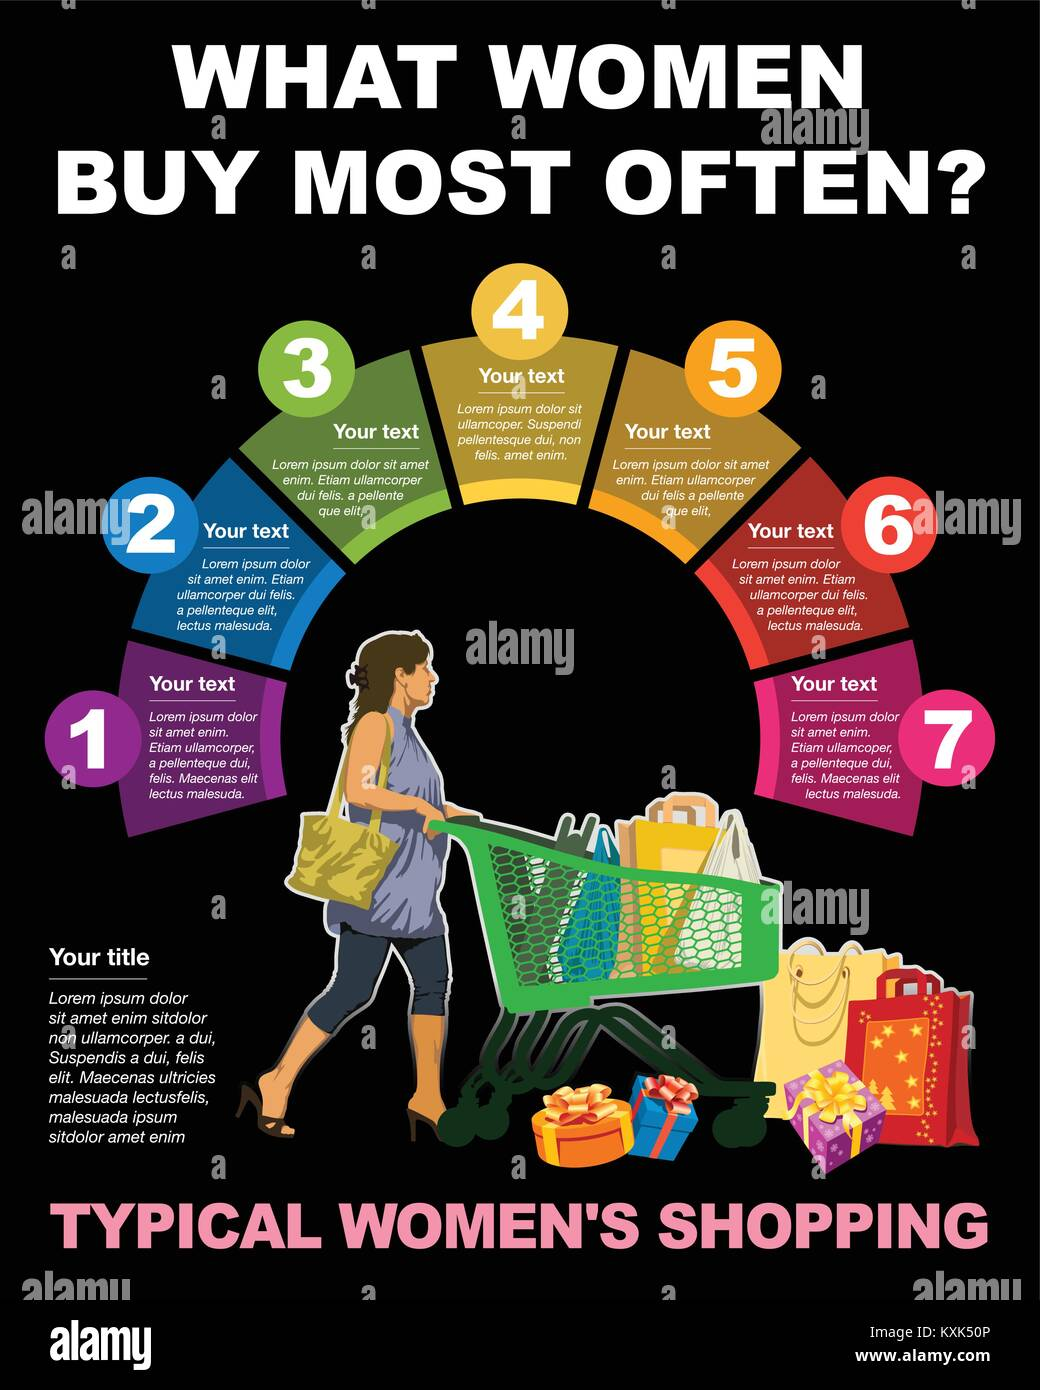 What people buy most often? Typical womenÕs shopping. - Stock Vector